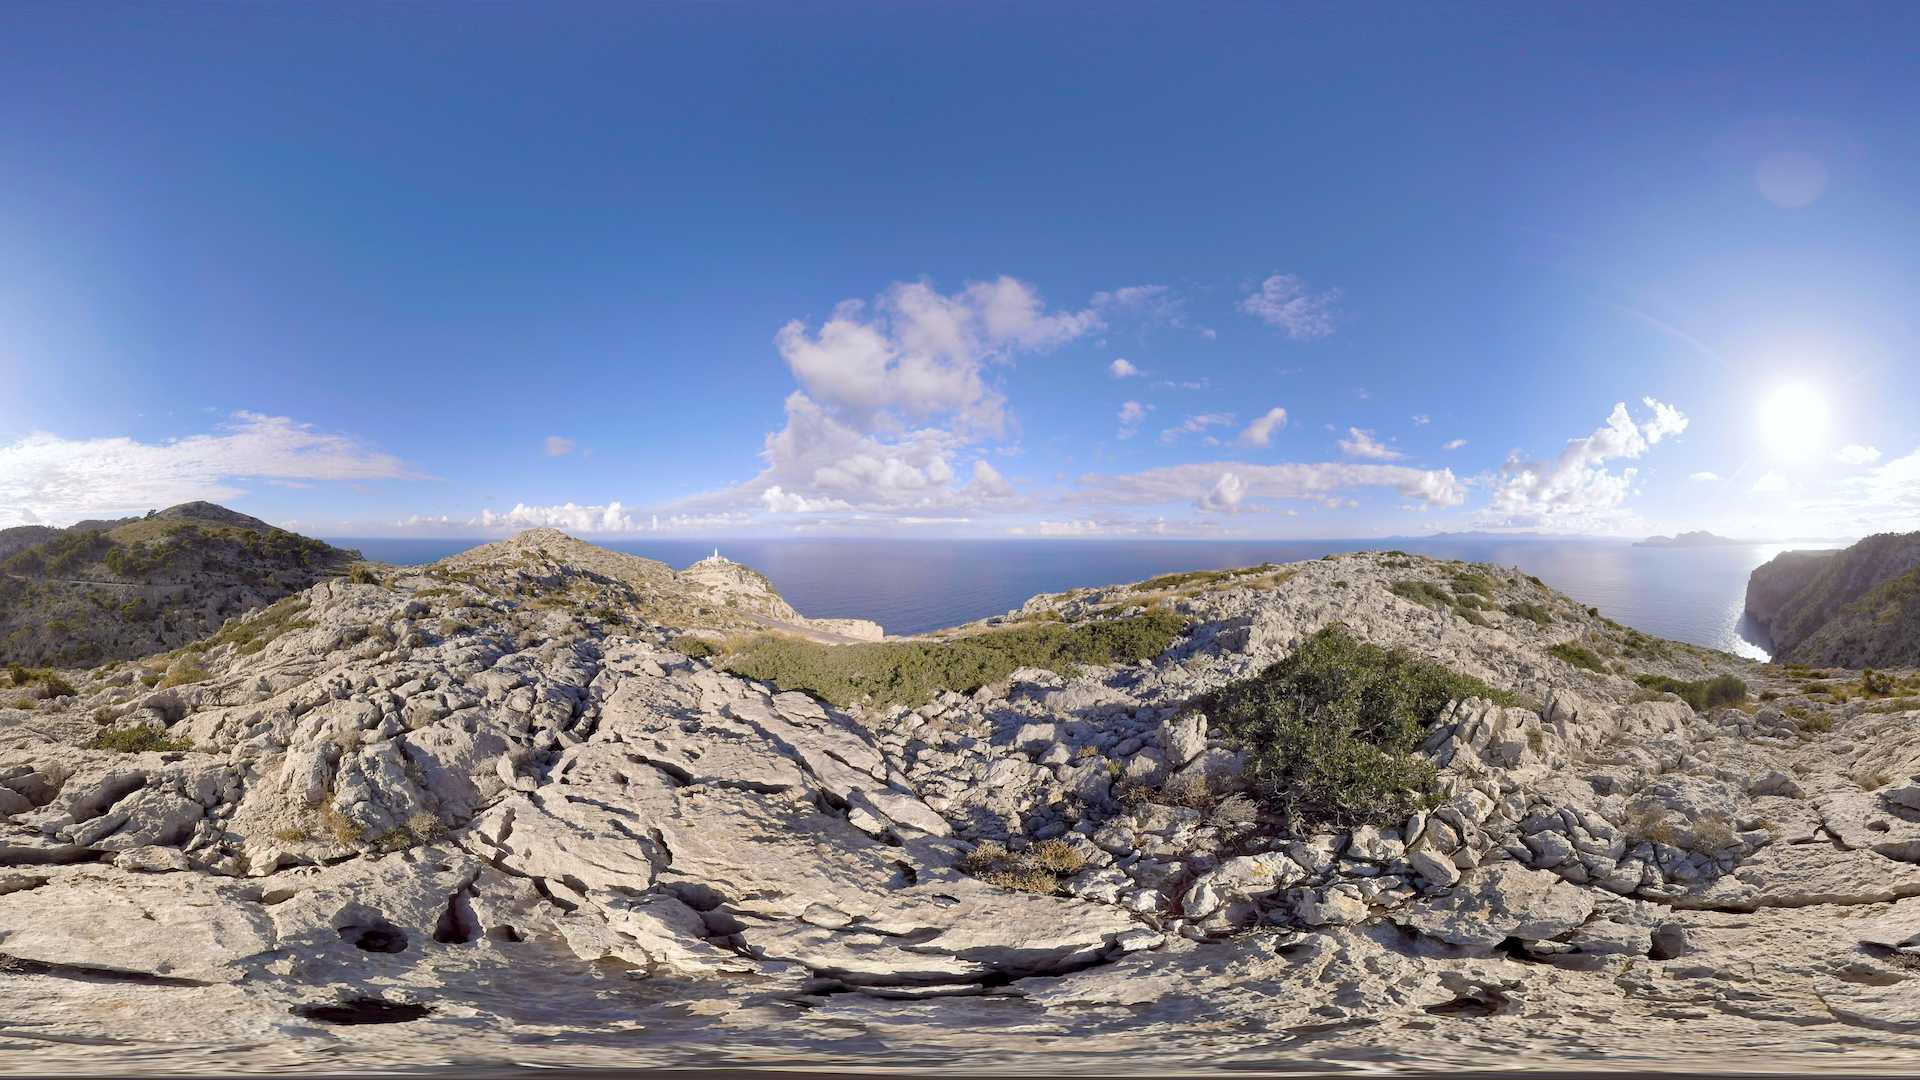 Mallorca - 360° VR Video Relaxation (6K/2D)